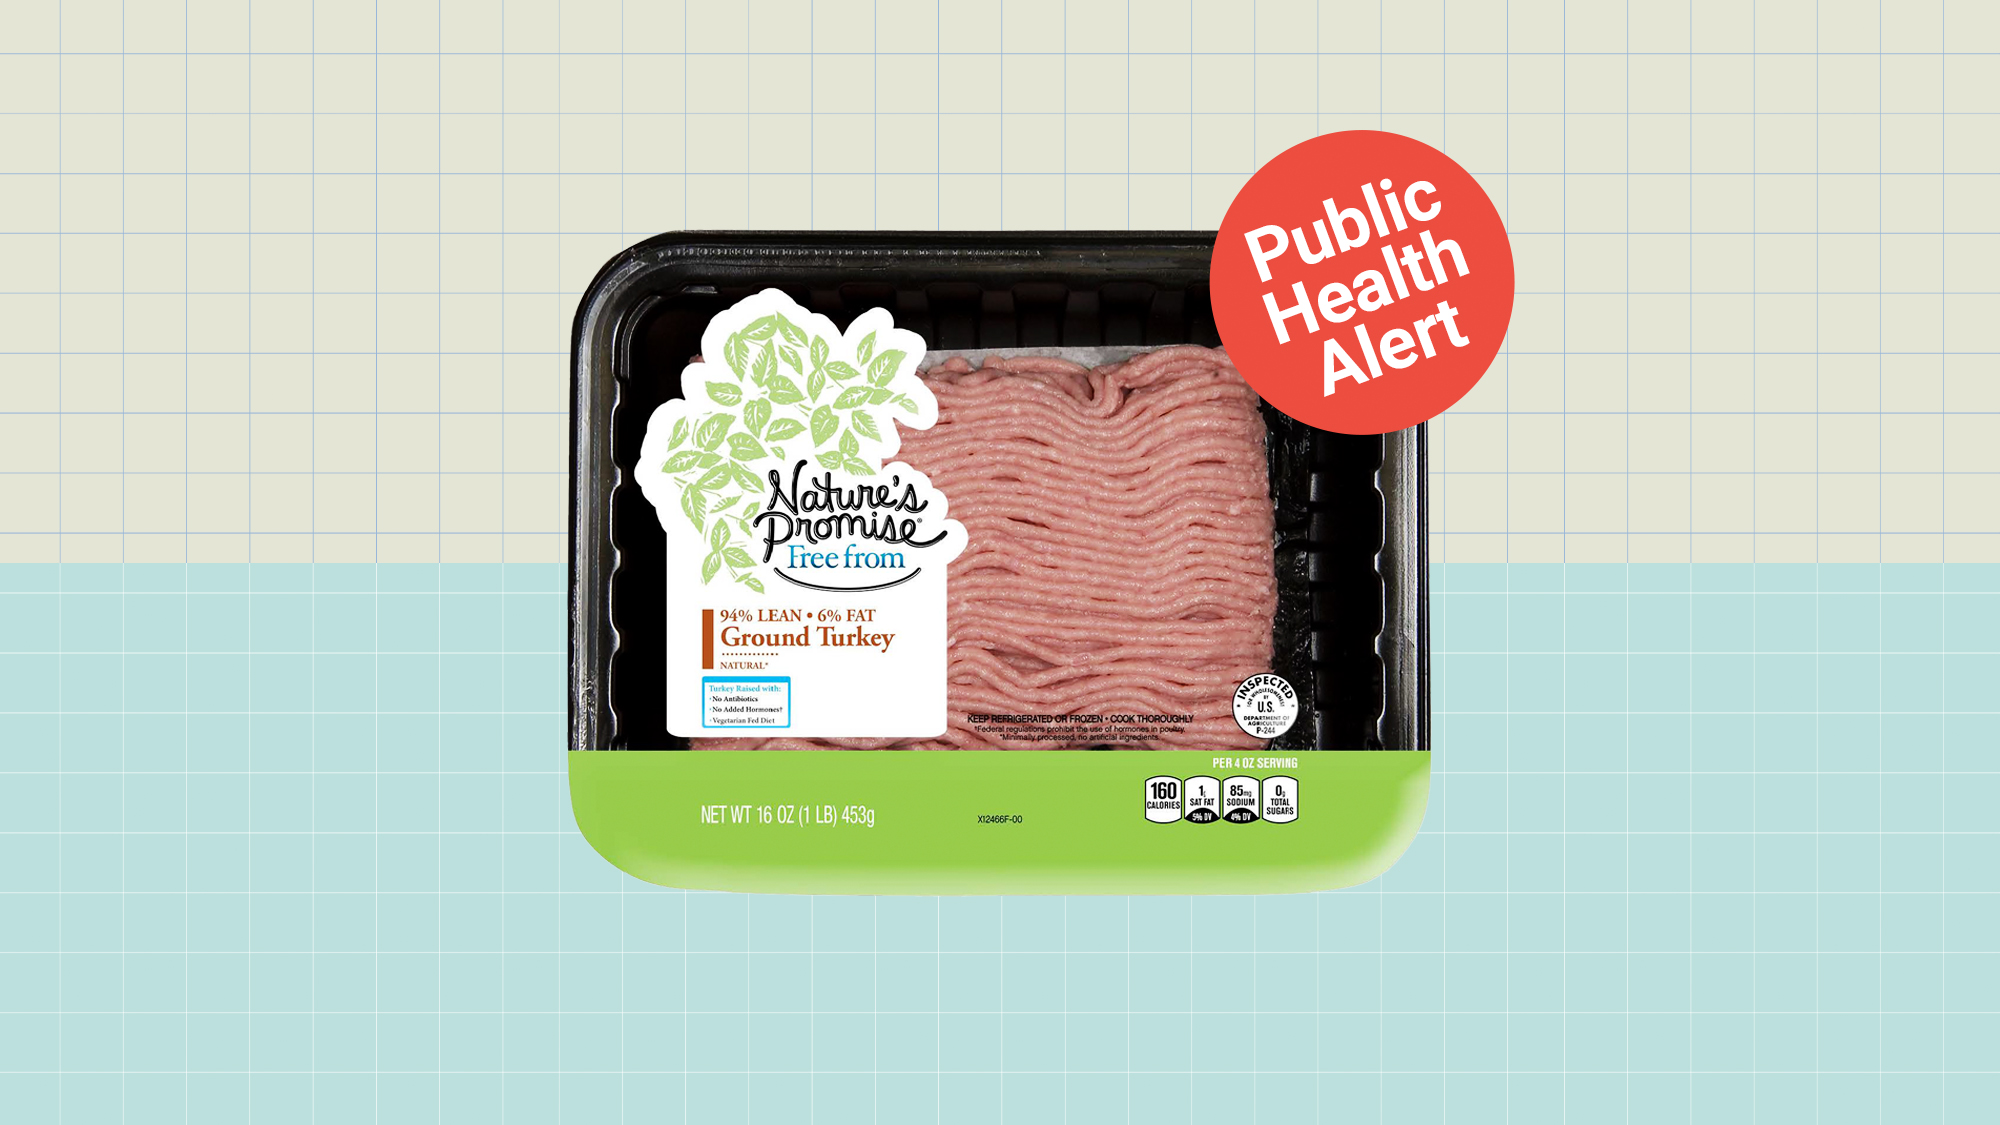 A package of raw ground turkey with a public Health Alert graphic on the top right corner